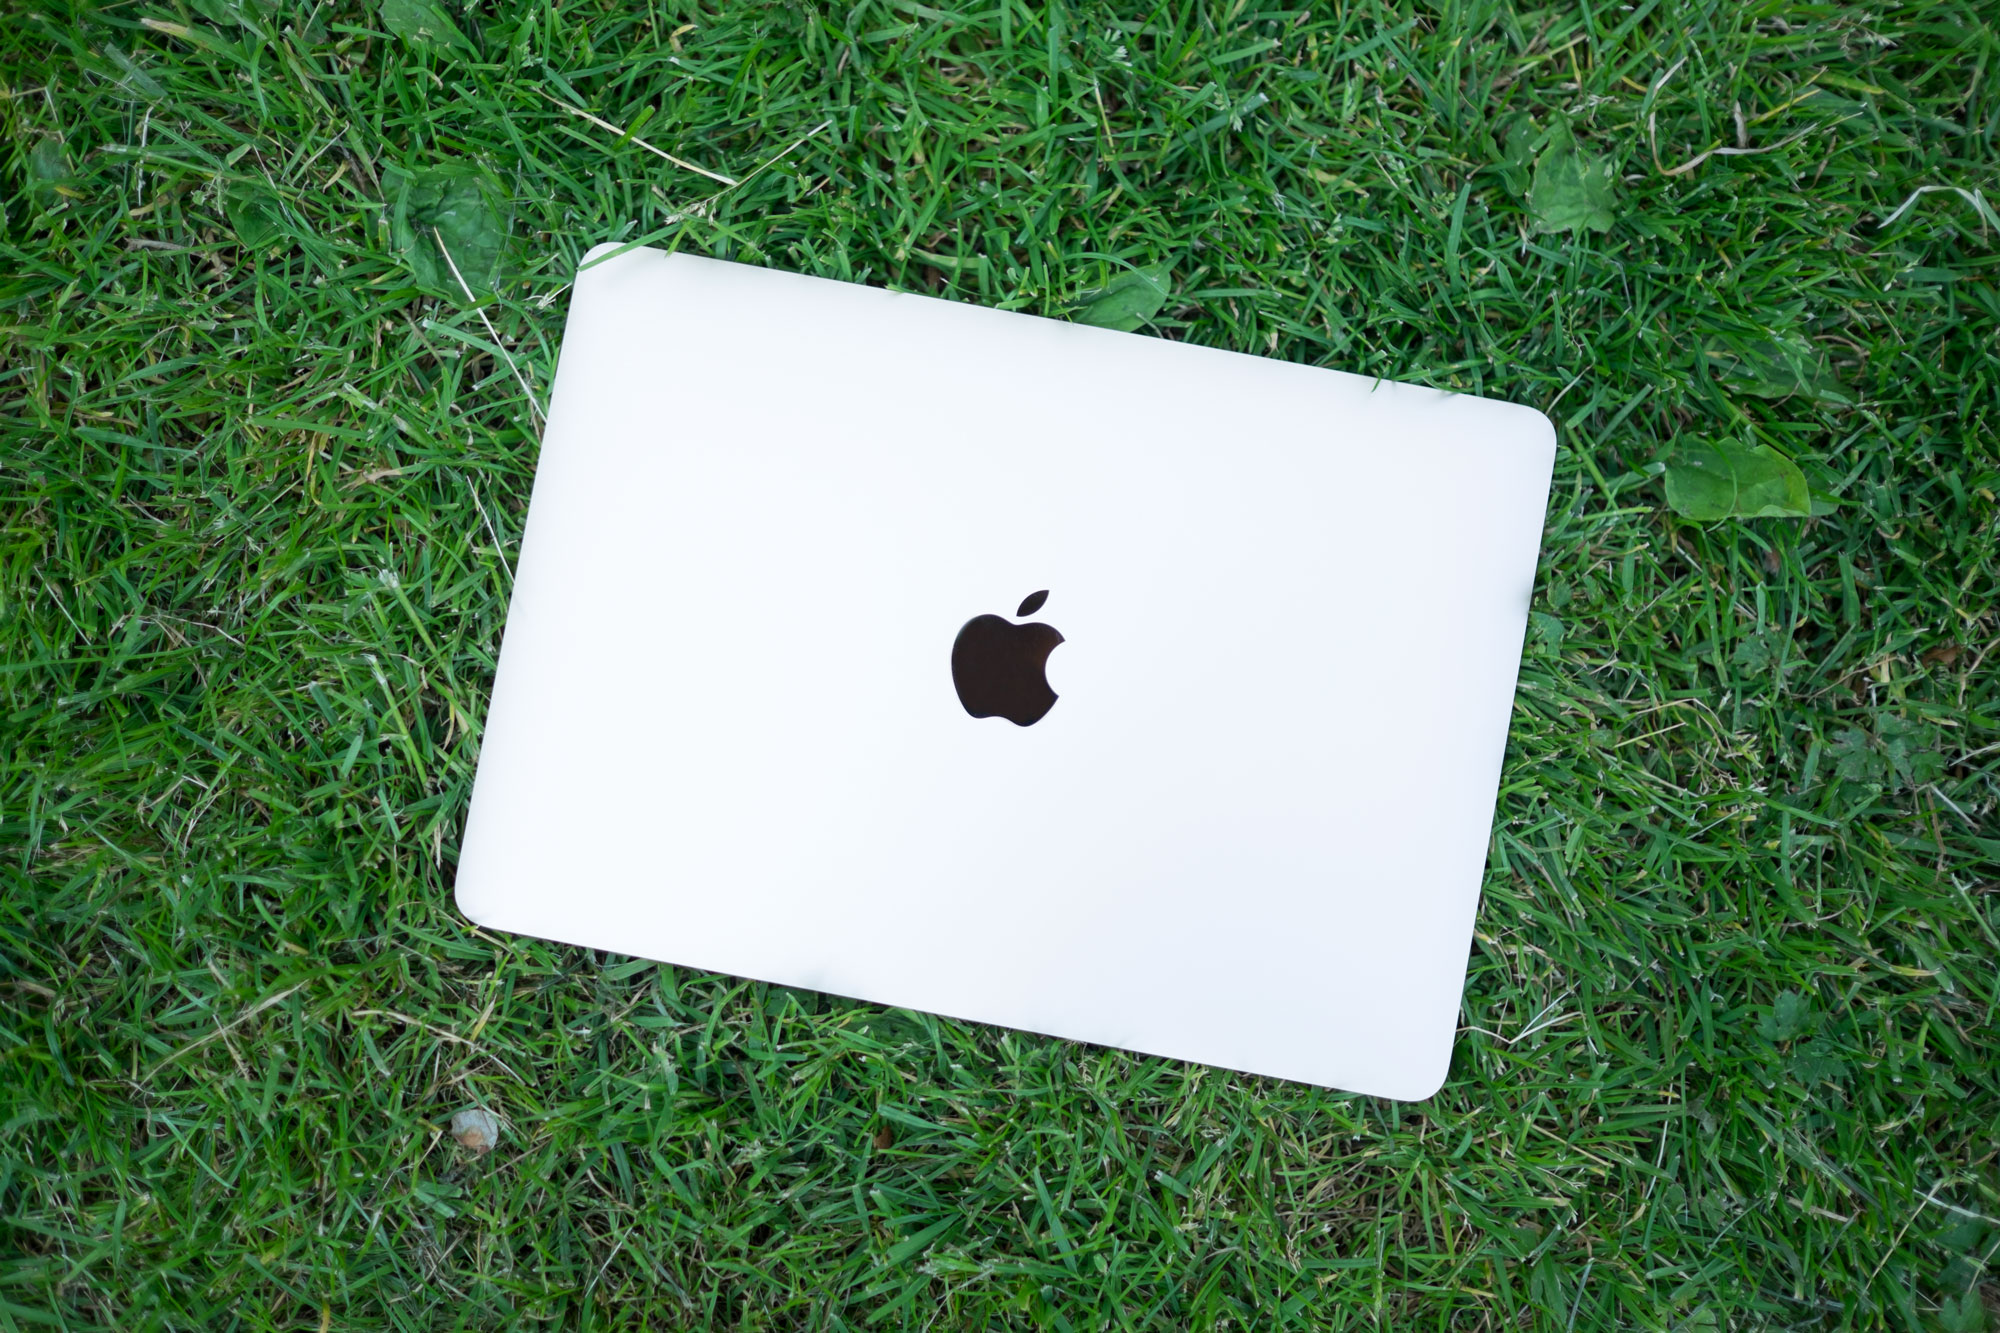 Apple Users: Should I get the new MacBook Air or the MacBook Pro?